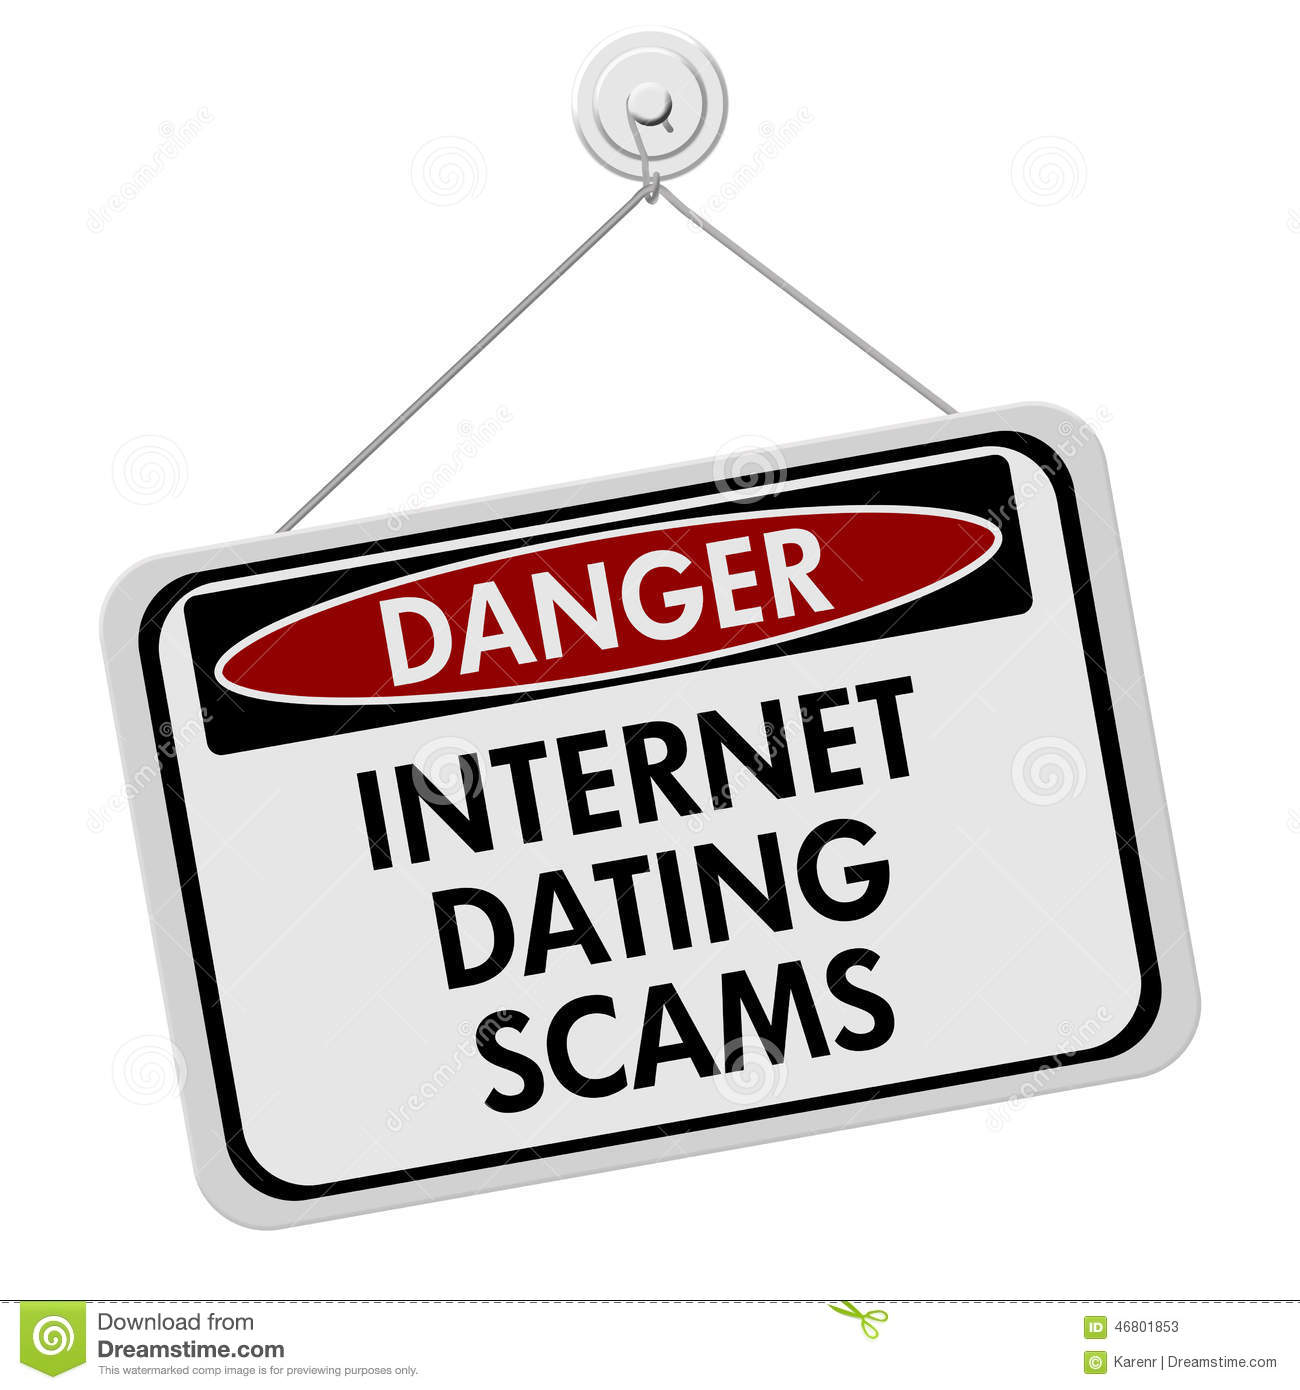 Online dating dangers stories